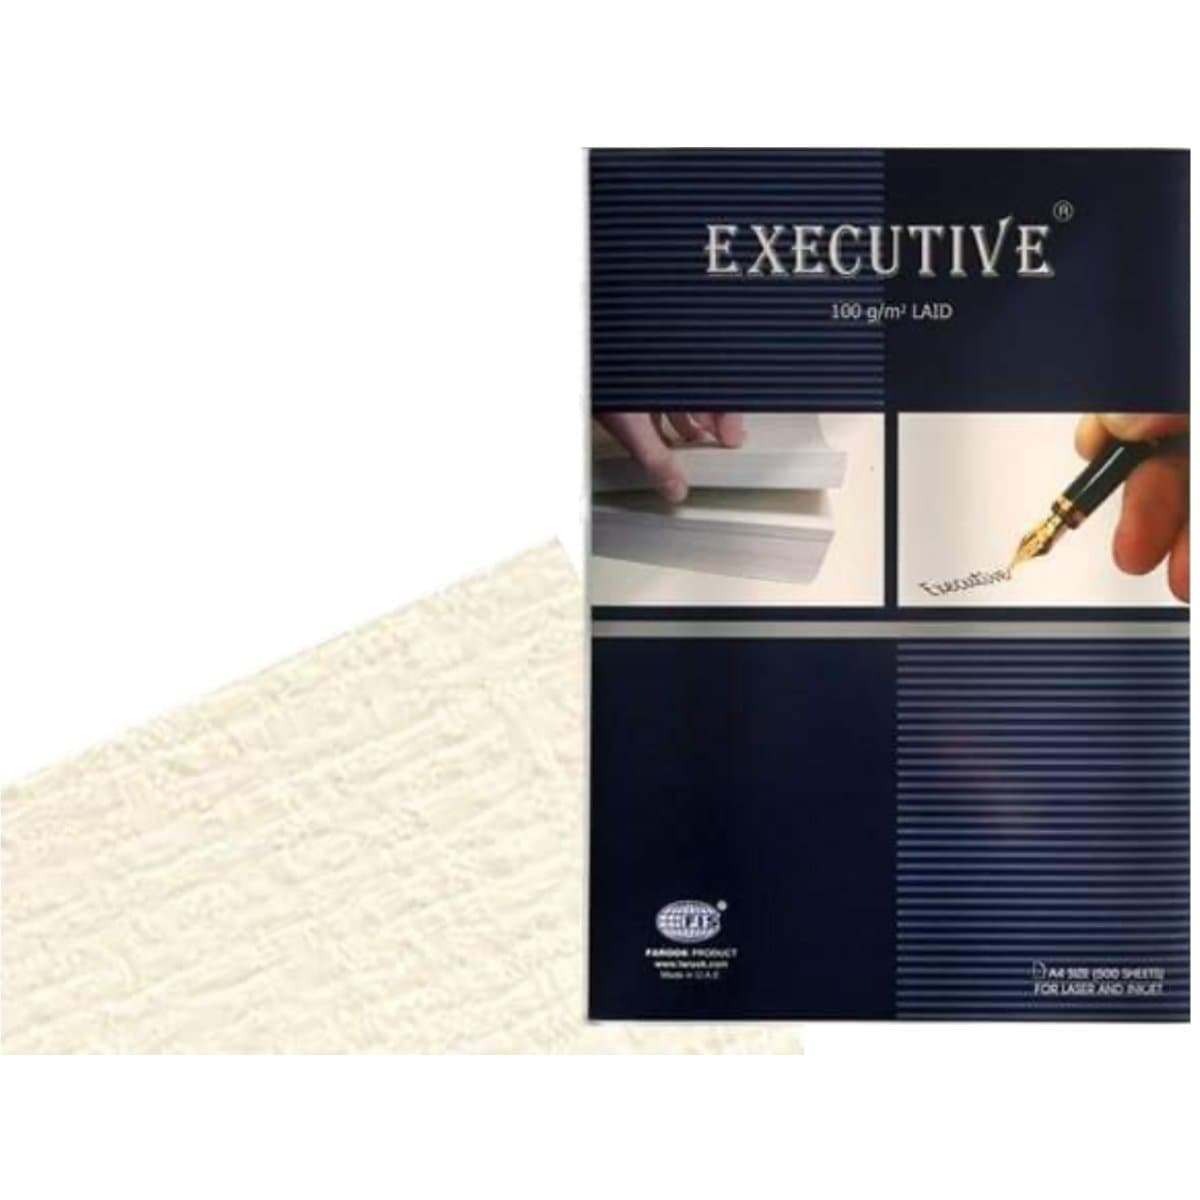 FIS Executive Laid Bond Paper A4, 100gsm, 500sheets/box, Off-White